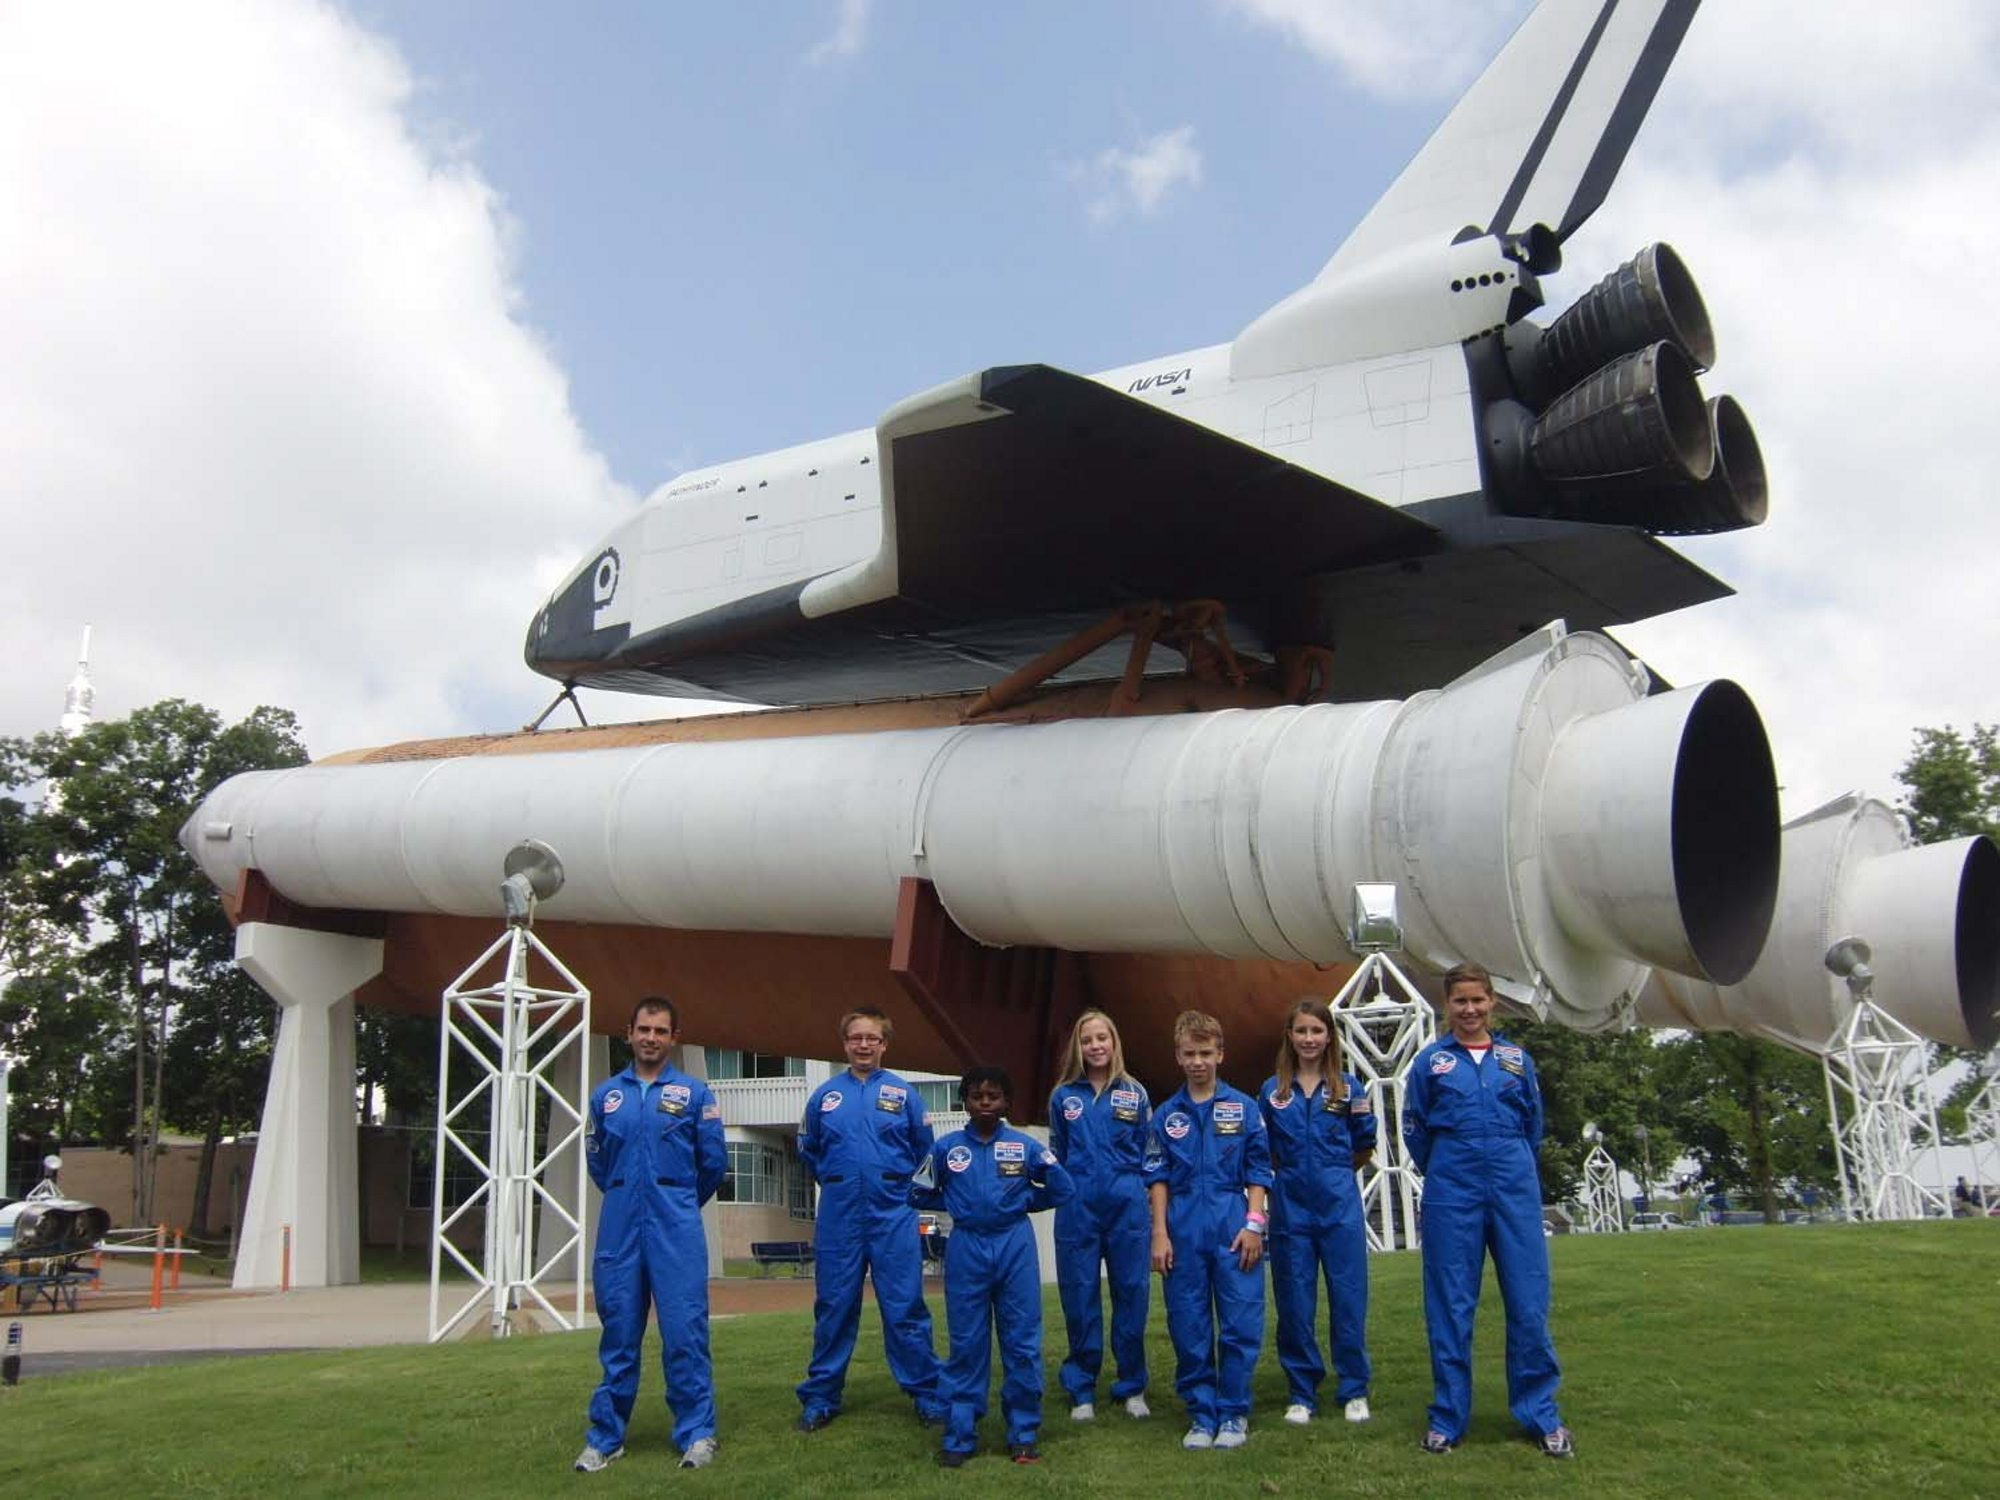 Depew Middle School technology teacher Aaron Nolan and students, from left, Max Mages, Nick Sugg, Megan Slocum, Aaron Schaefer, Breonna Smith and Shannon O'Rawe recently attended U.S. Space Camp in Huntsville, Ala.